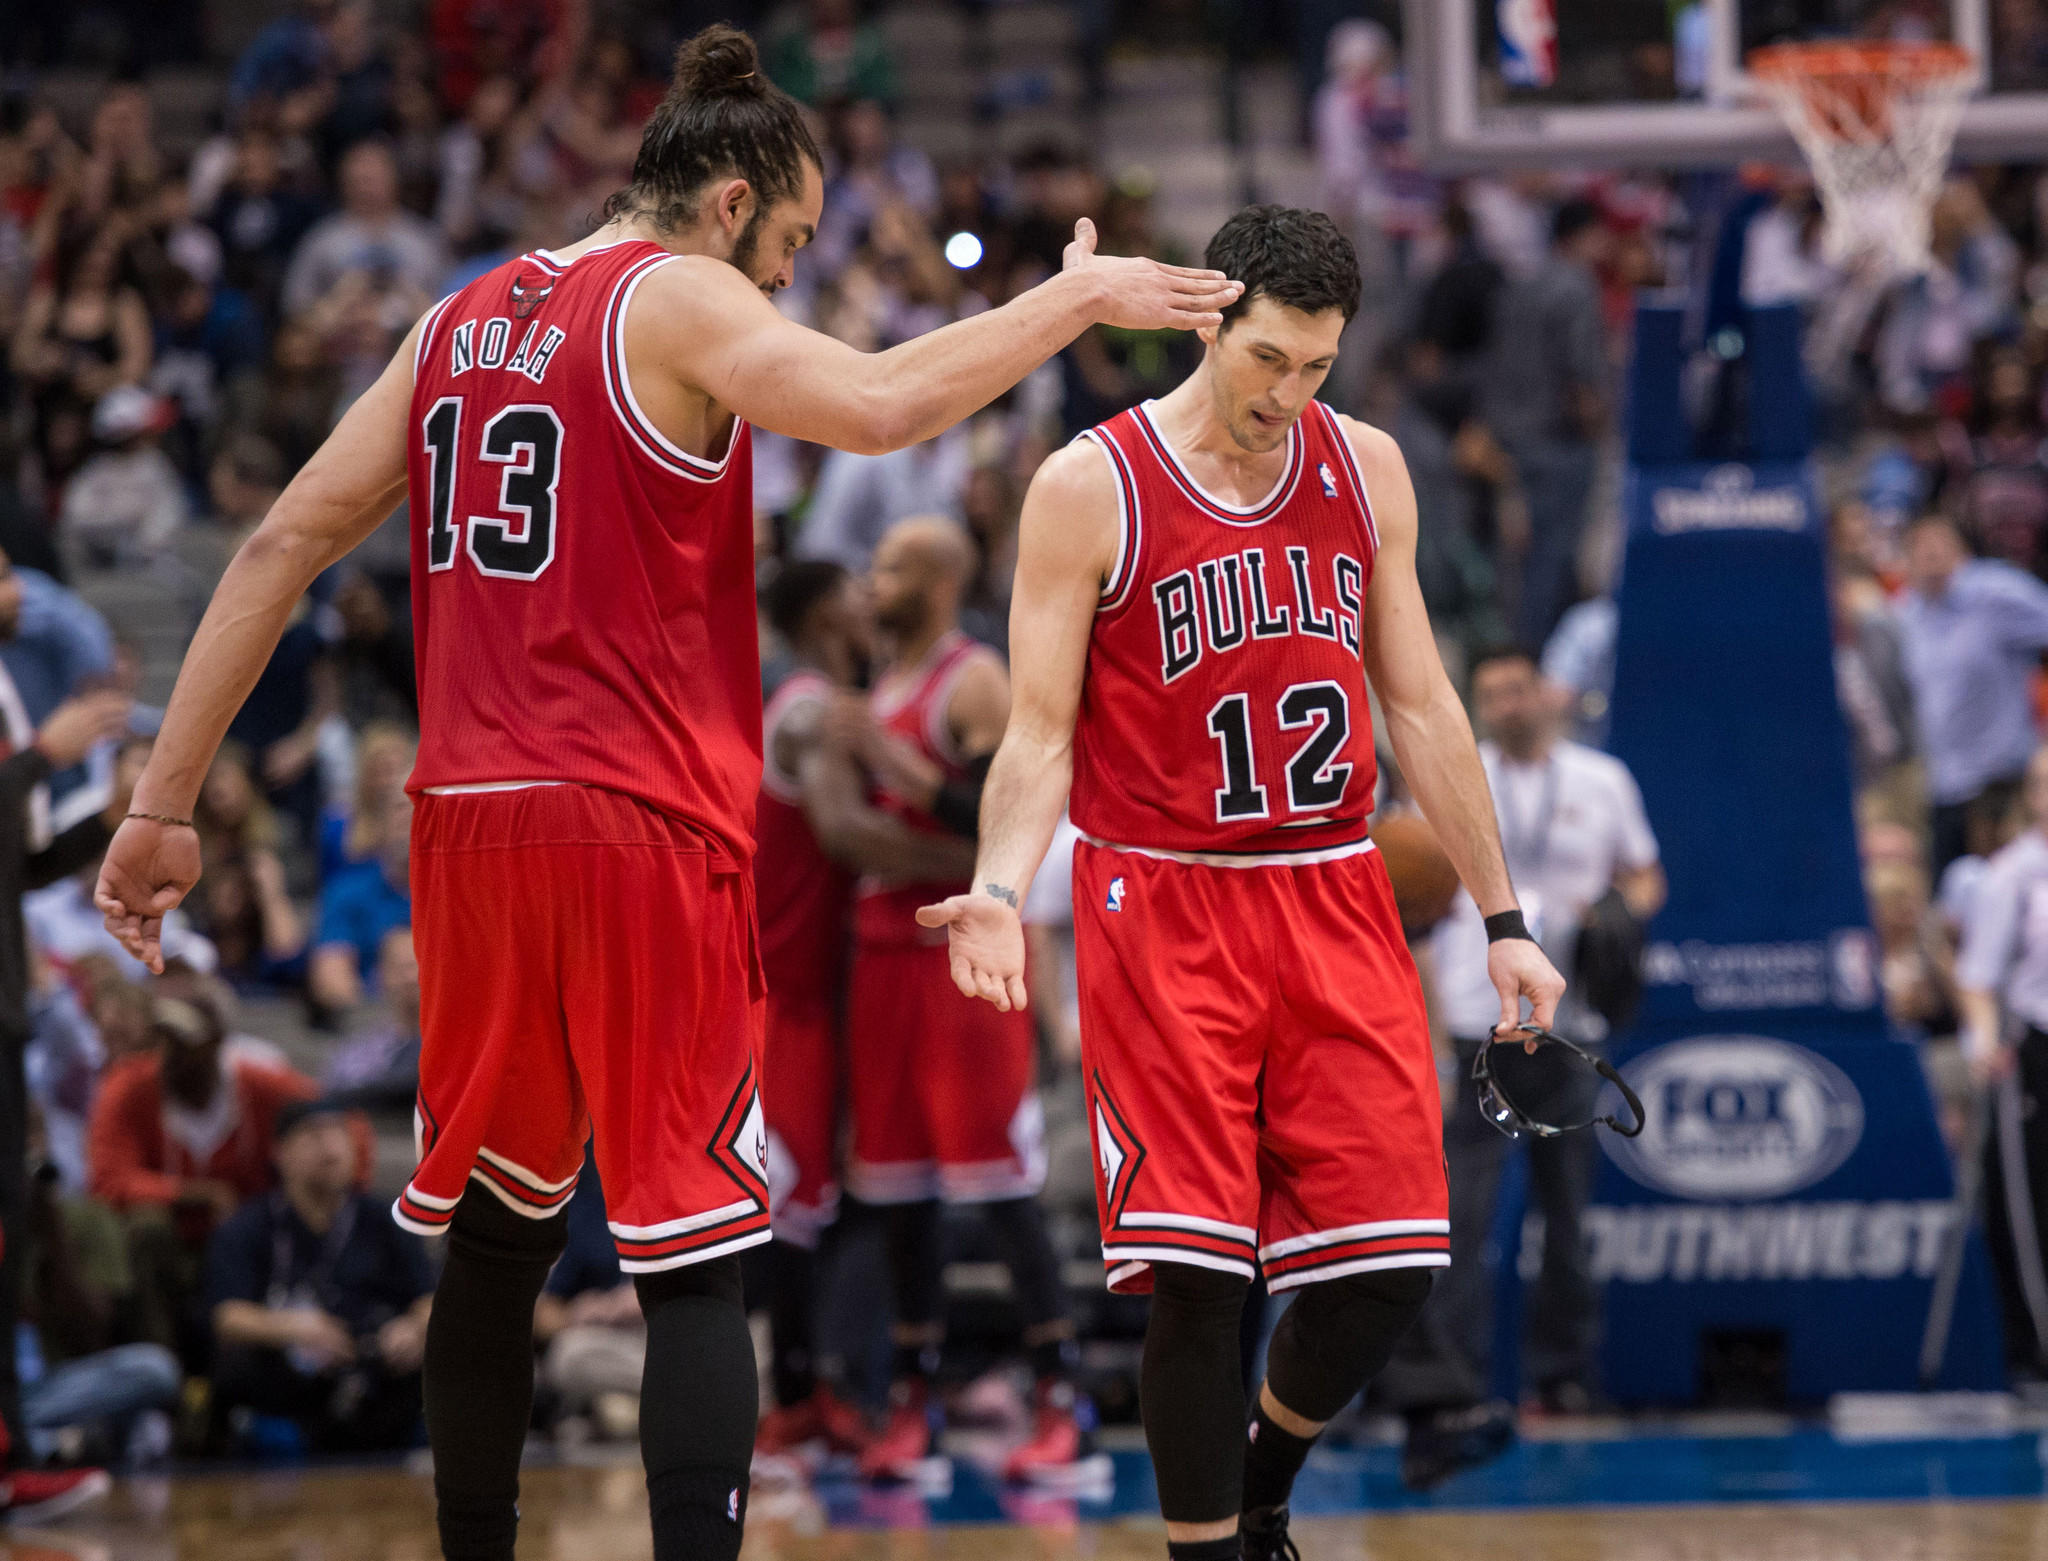 Chicago Bulls center Joakim Noah (13) and shooting guard Kirk Hinrich (12) celebrate the win over the Dallas Mavericks at the American Airlines Center. The Bulls defeated the Mavericks 100-91.